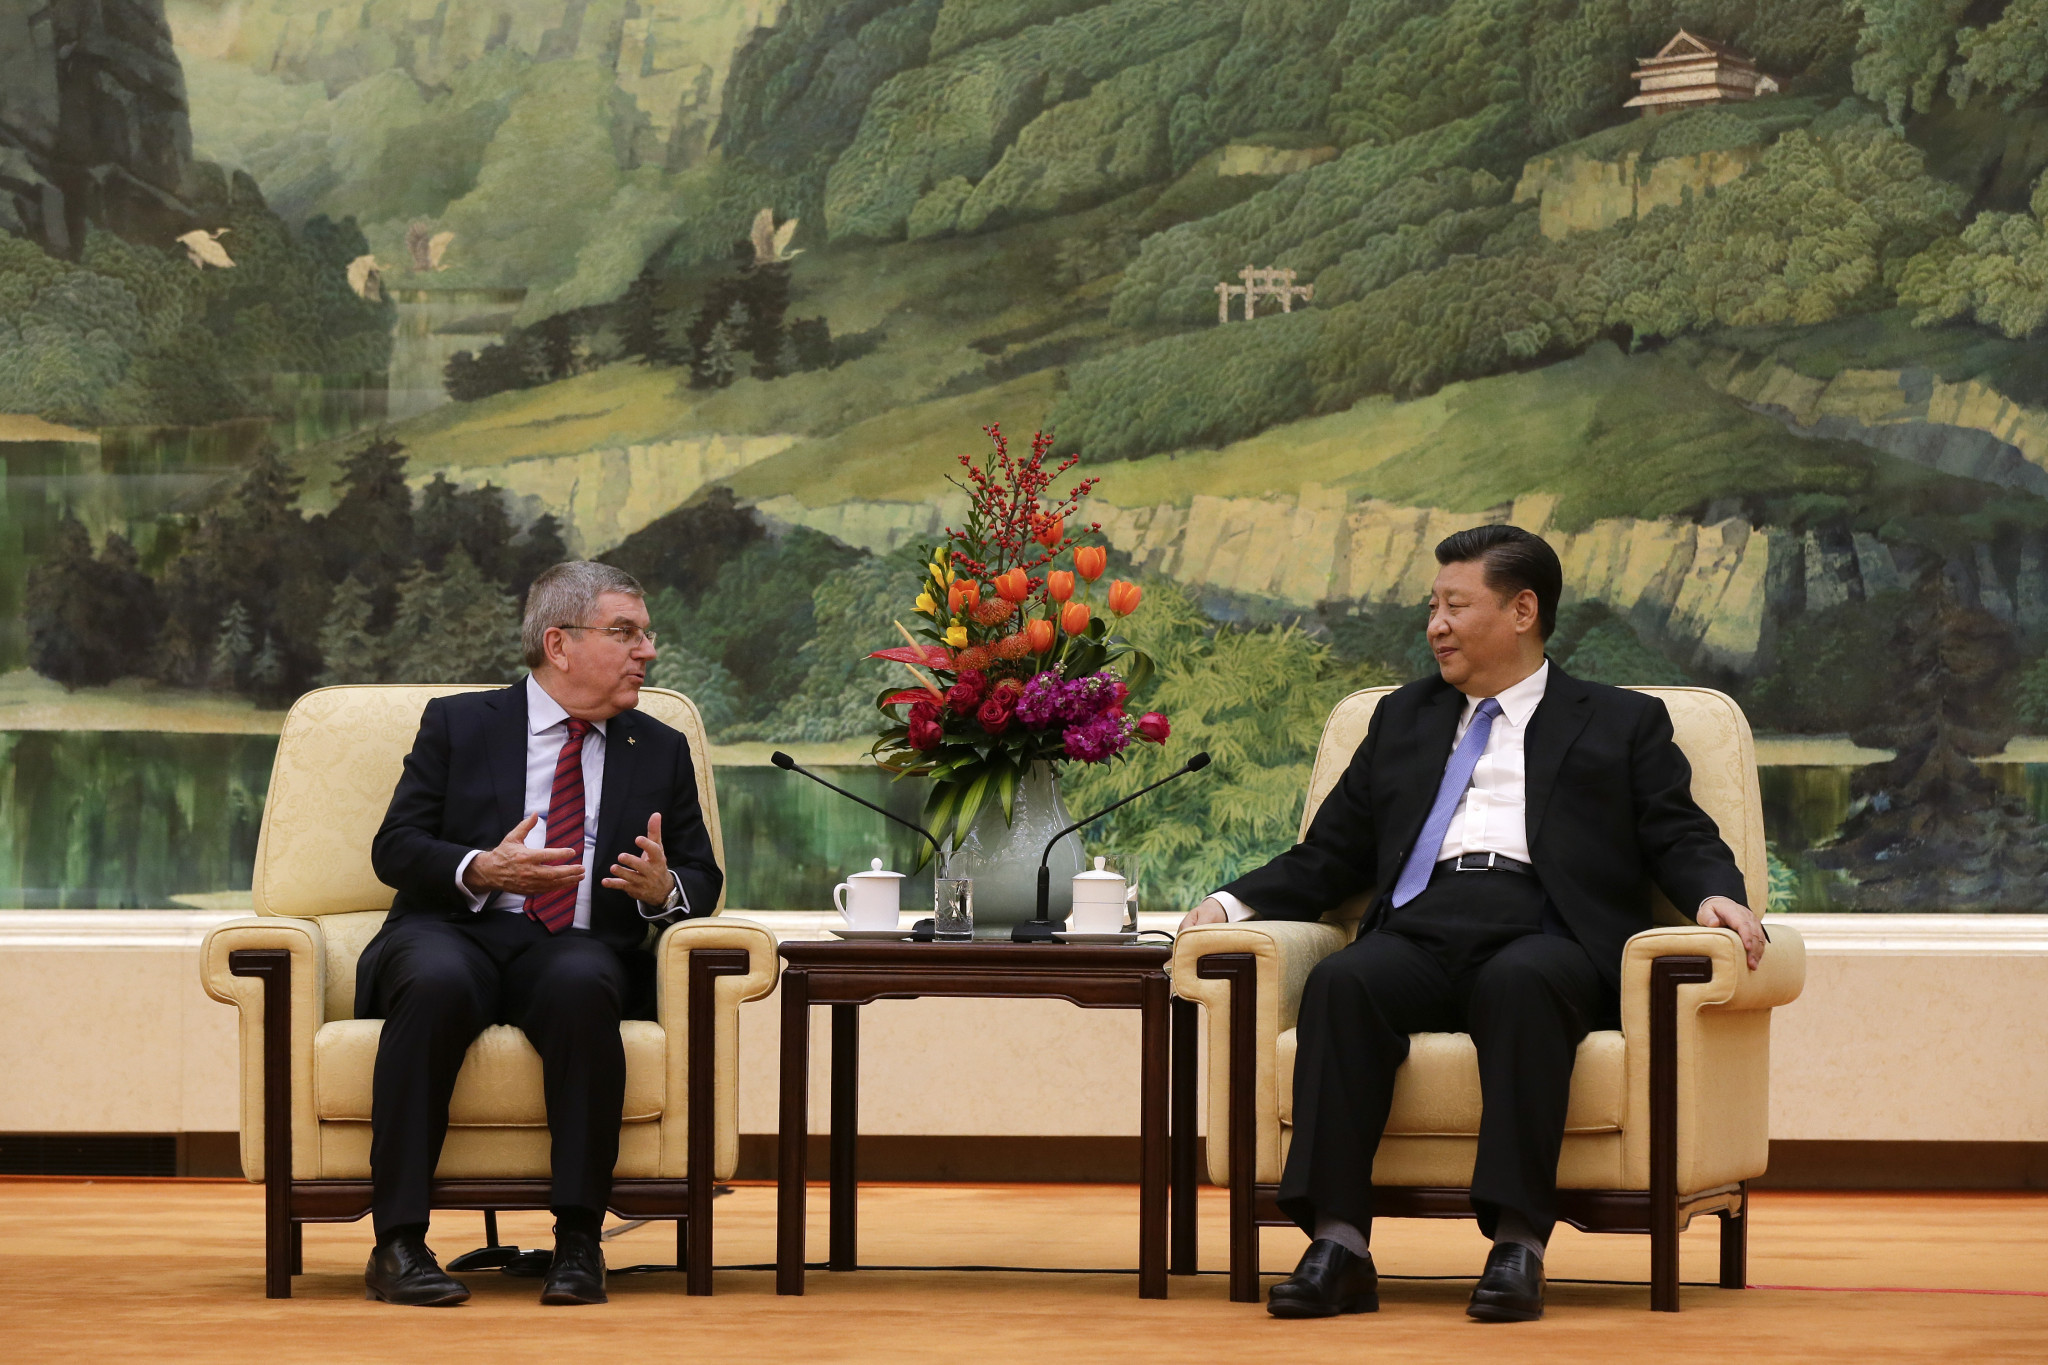 Chinese President Xi and IOC President Bach speak about Beijing 2022 during call